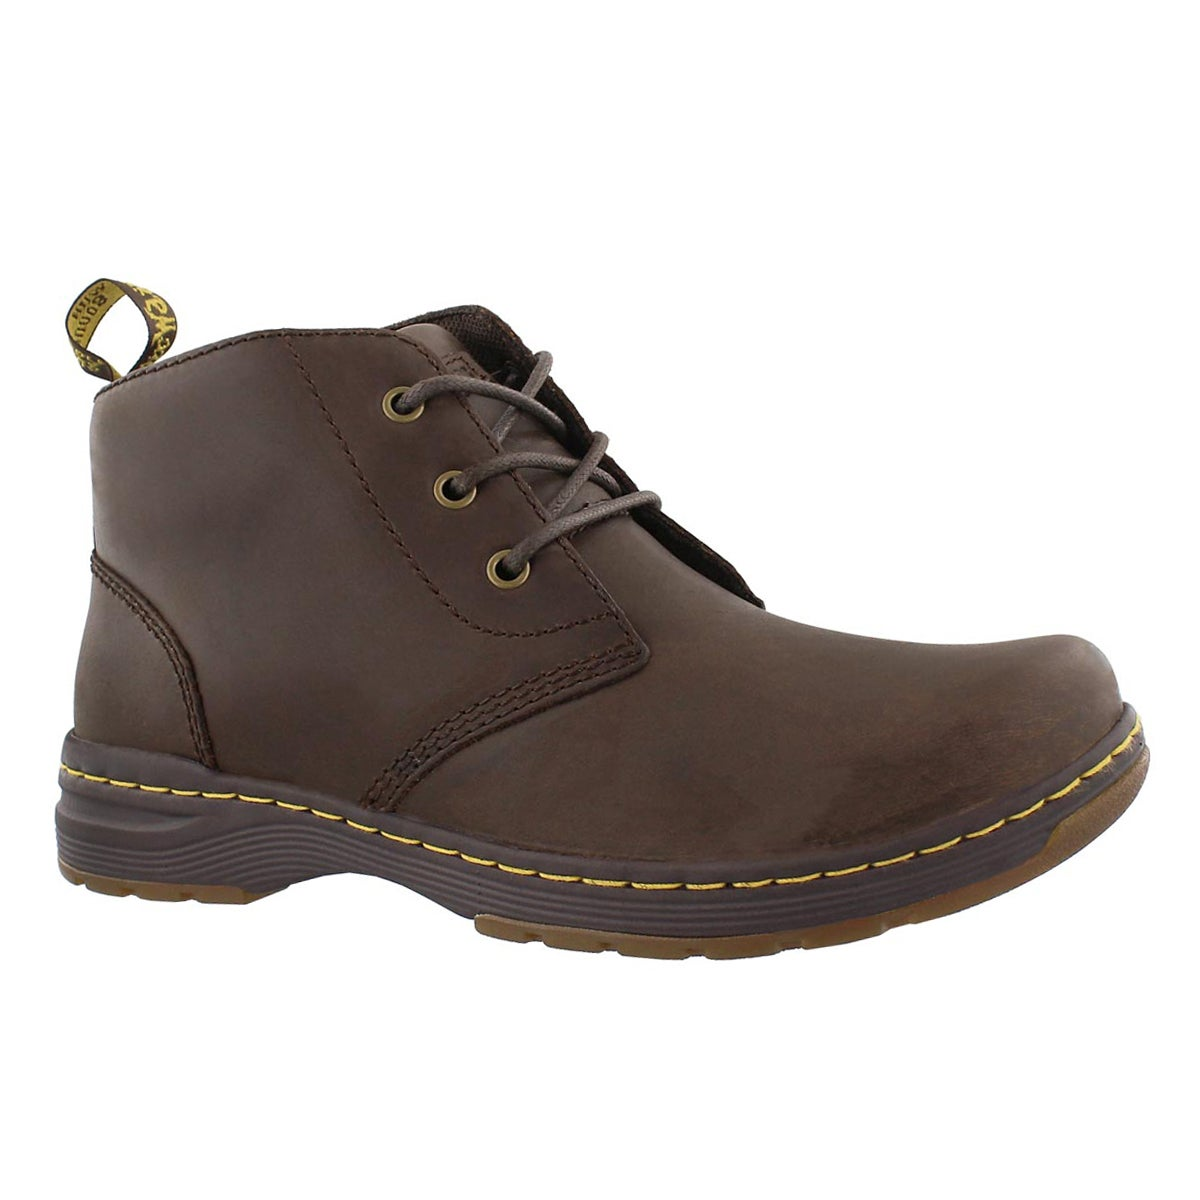 Men's EMIL brown oily leather chukka boot